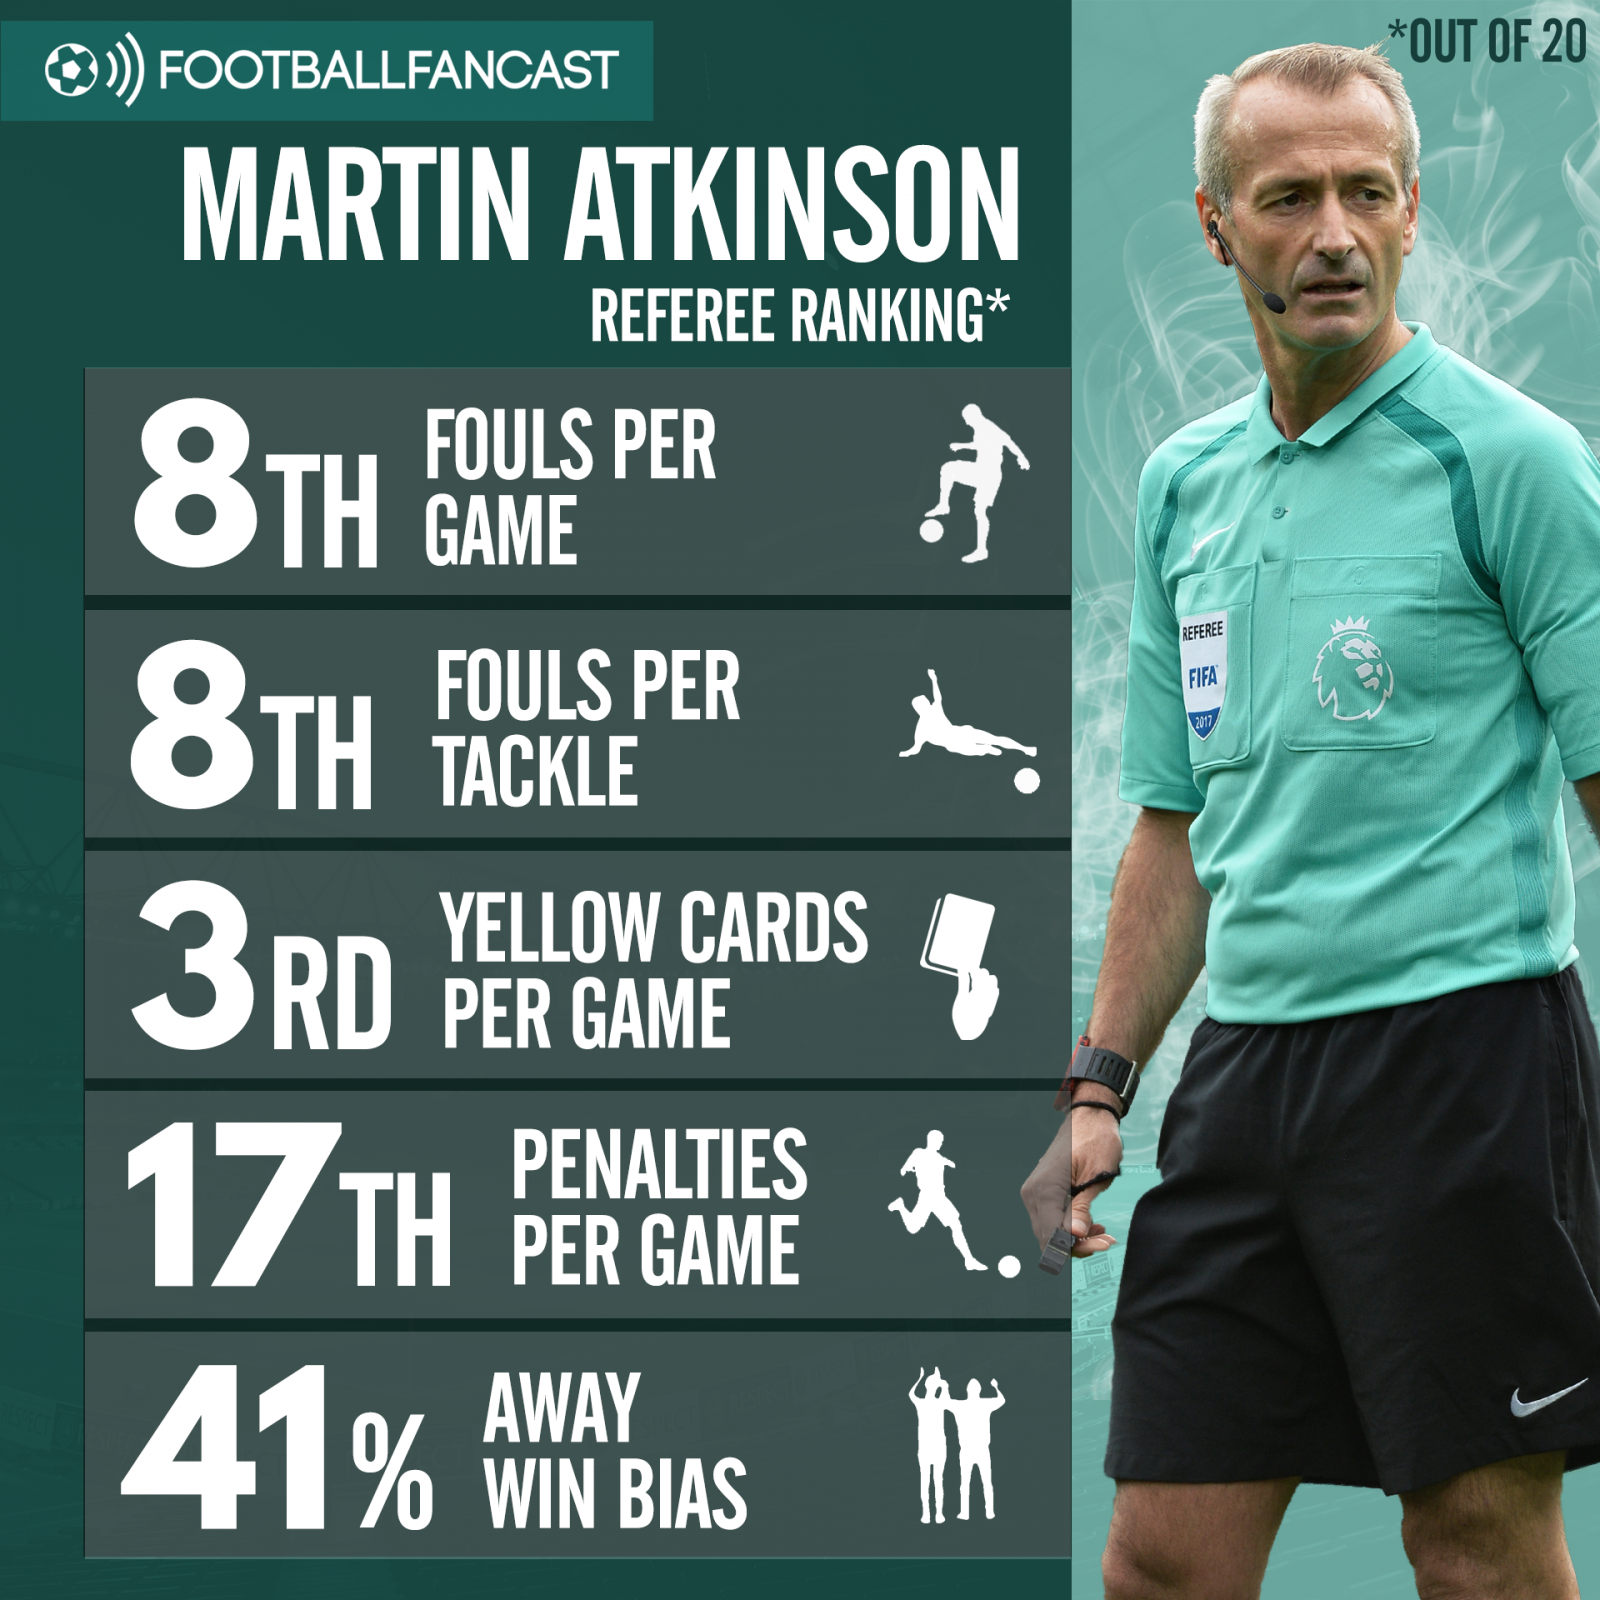 Referee Martin Atkinson's stats this season